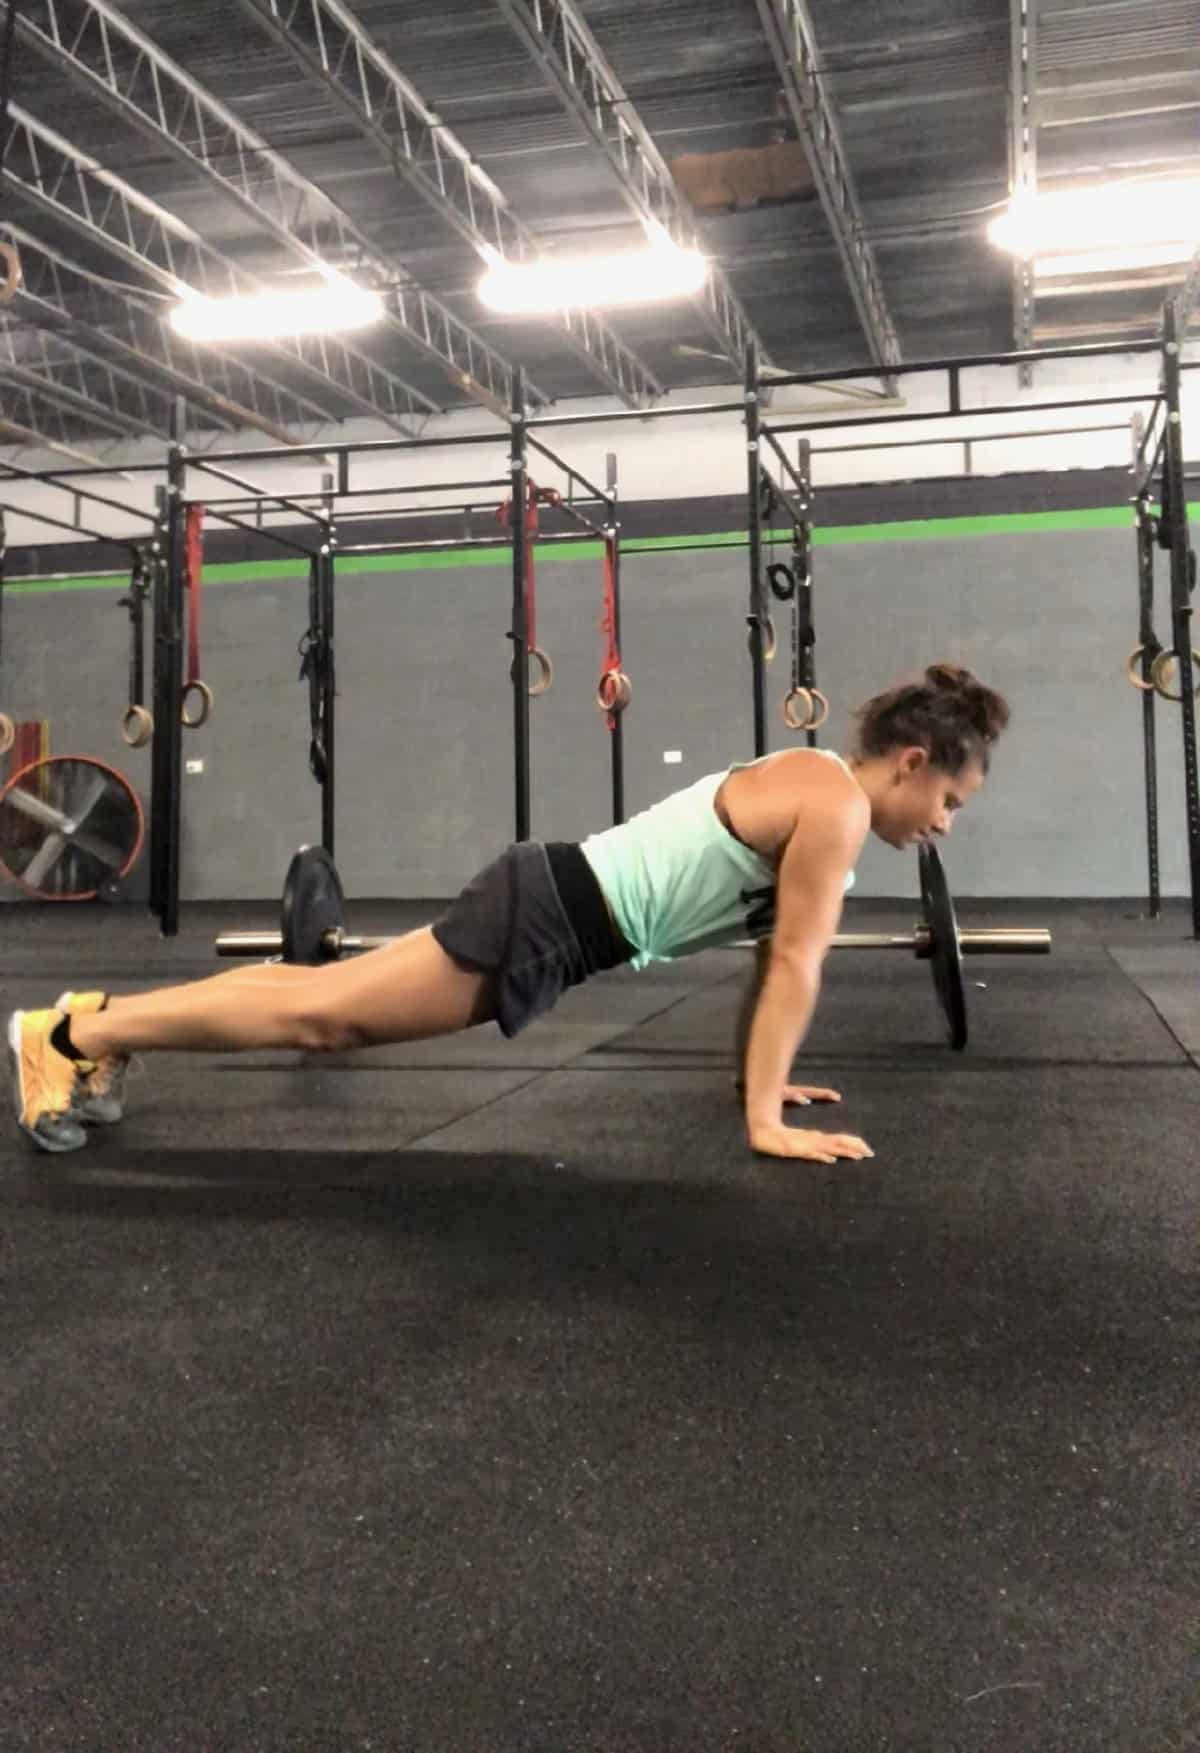 Girl on your feet and hands in a high plank position doing a push-up